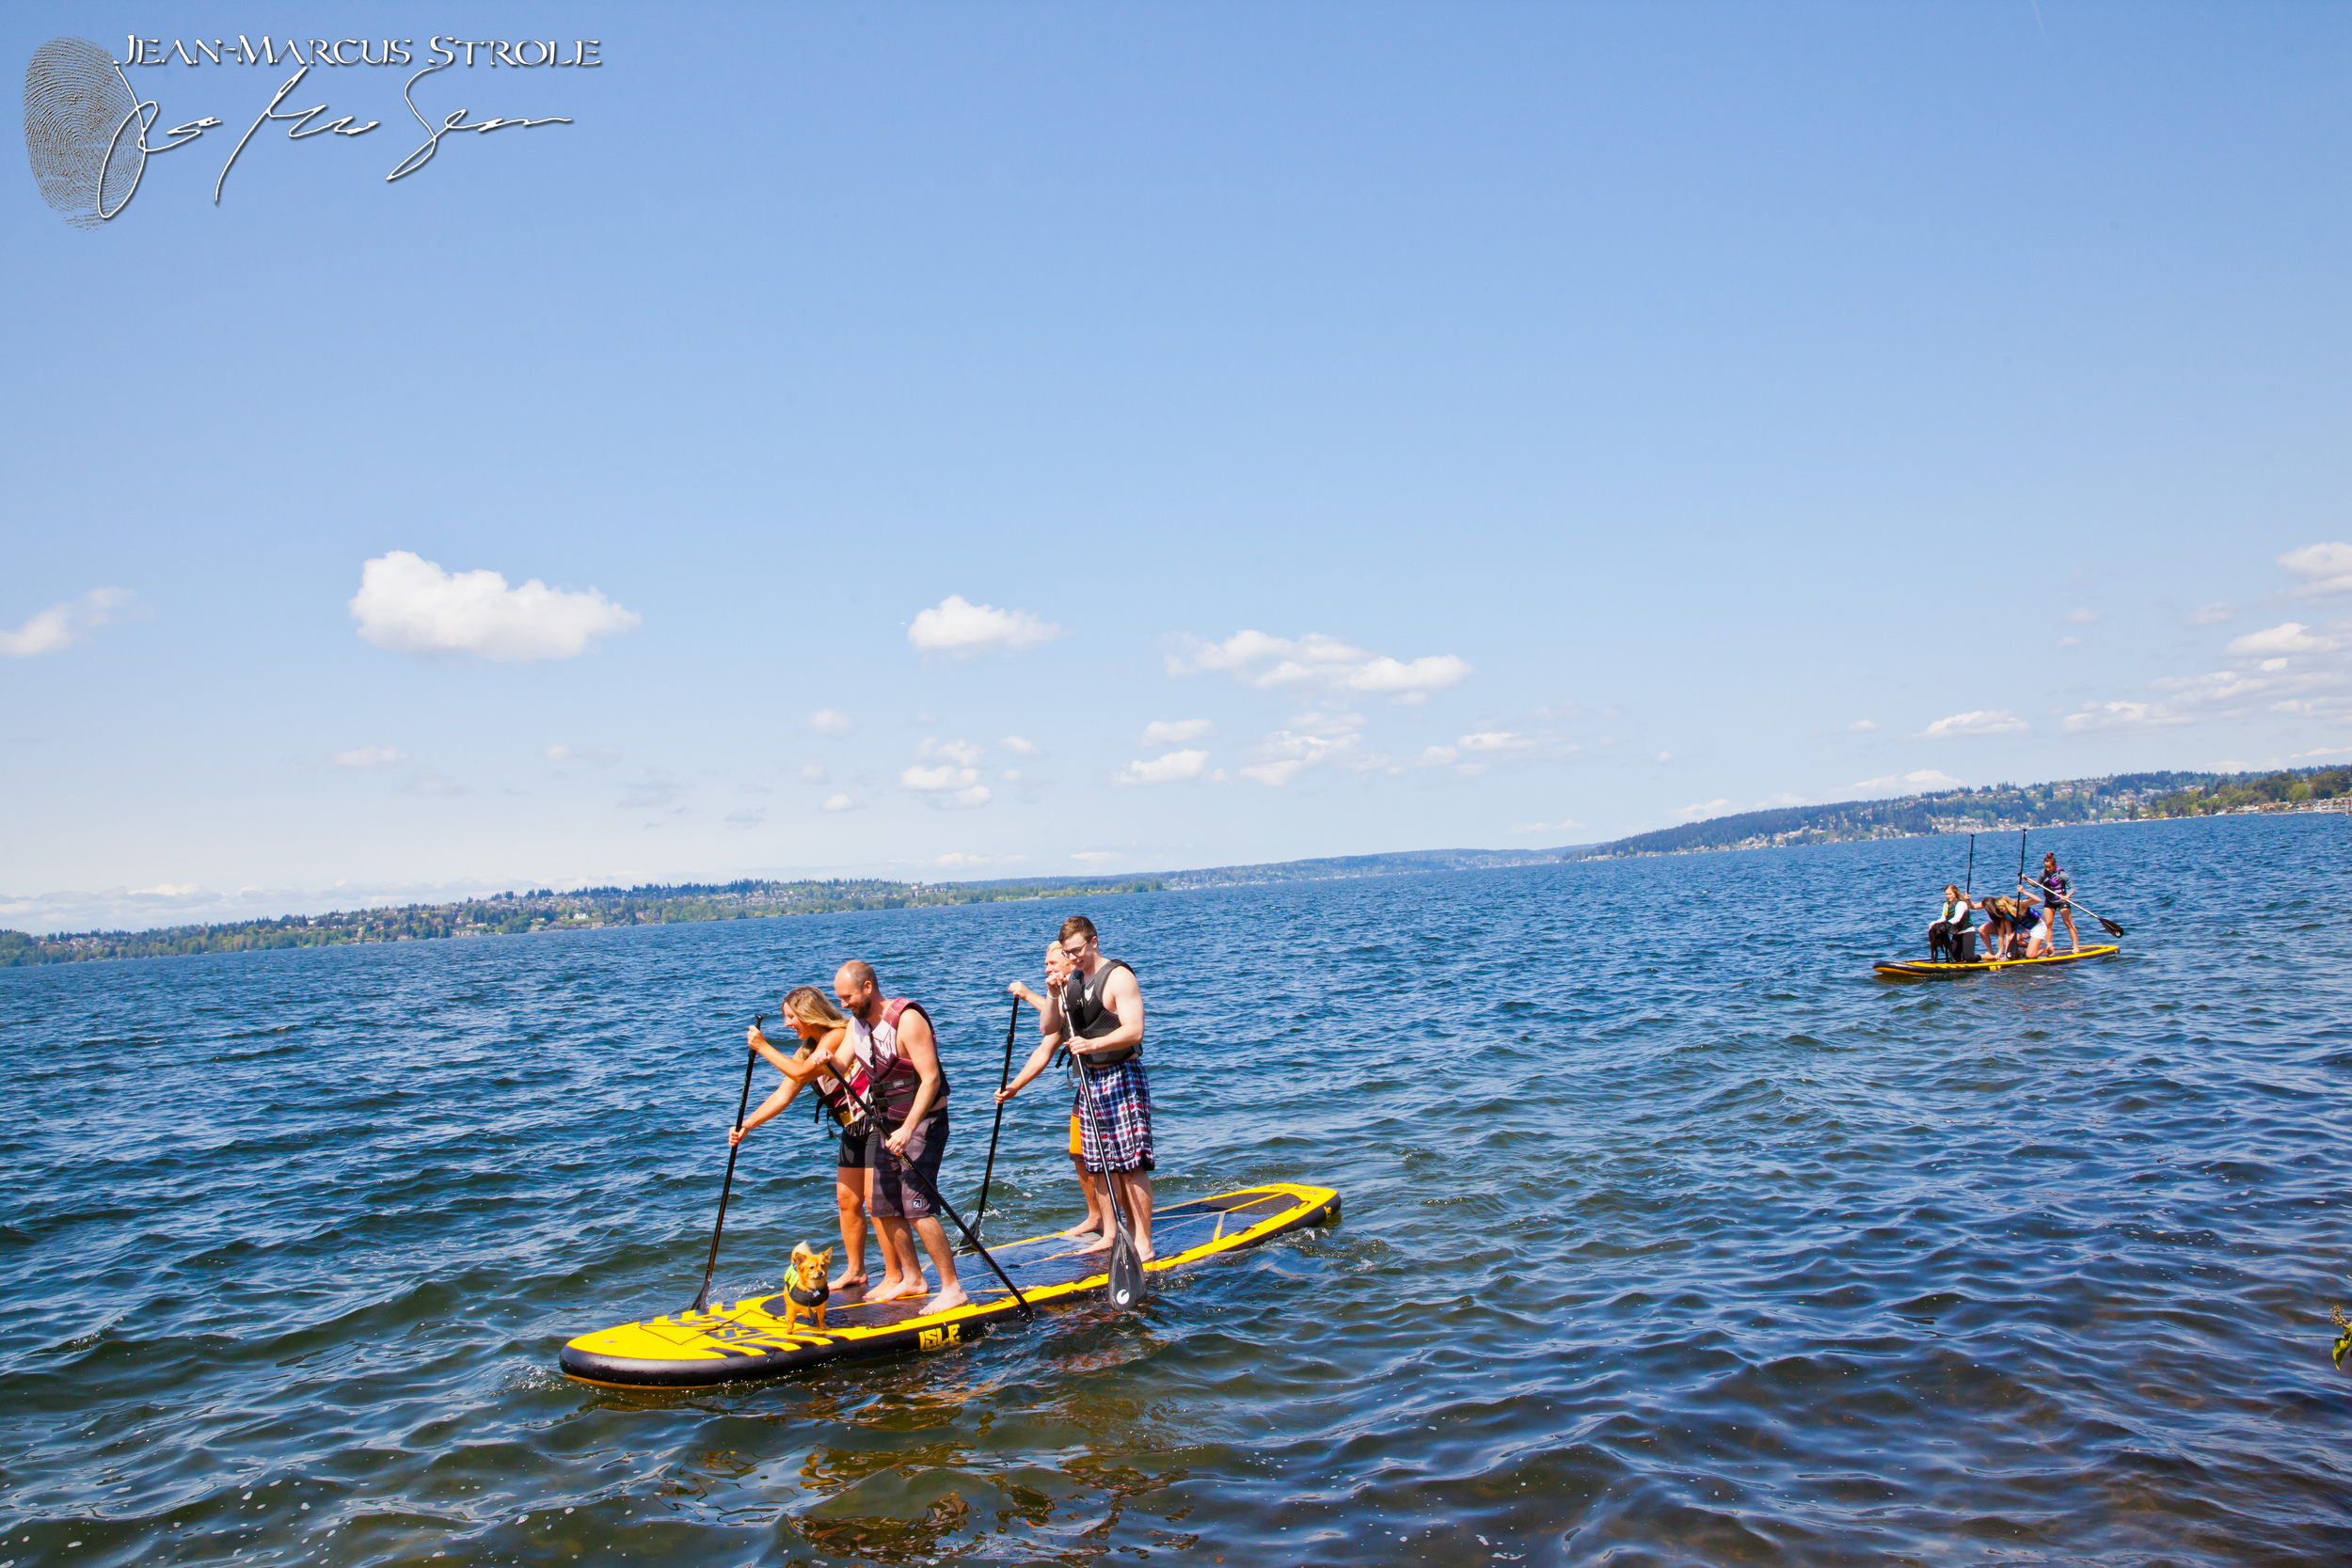 Carillon_Point_Waterfront_Adventures-Jean-Marcus_Strole_Photography-51.jpg